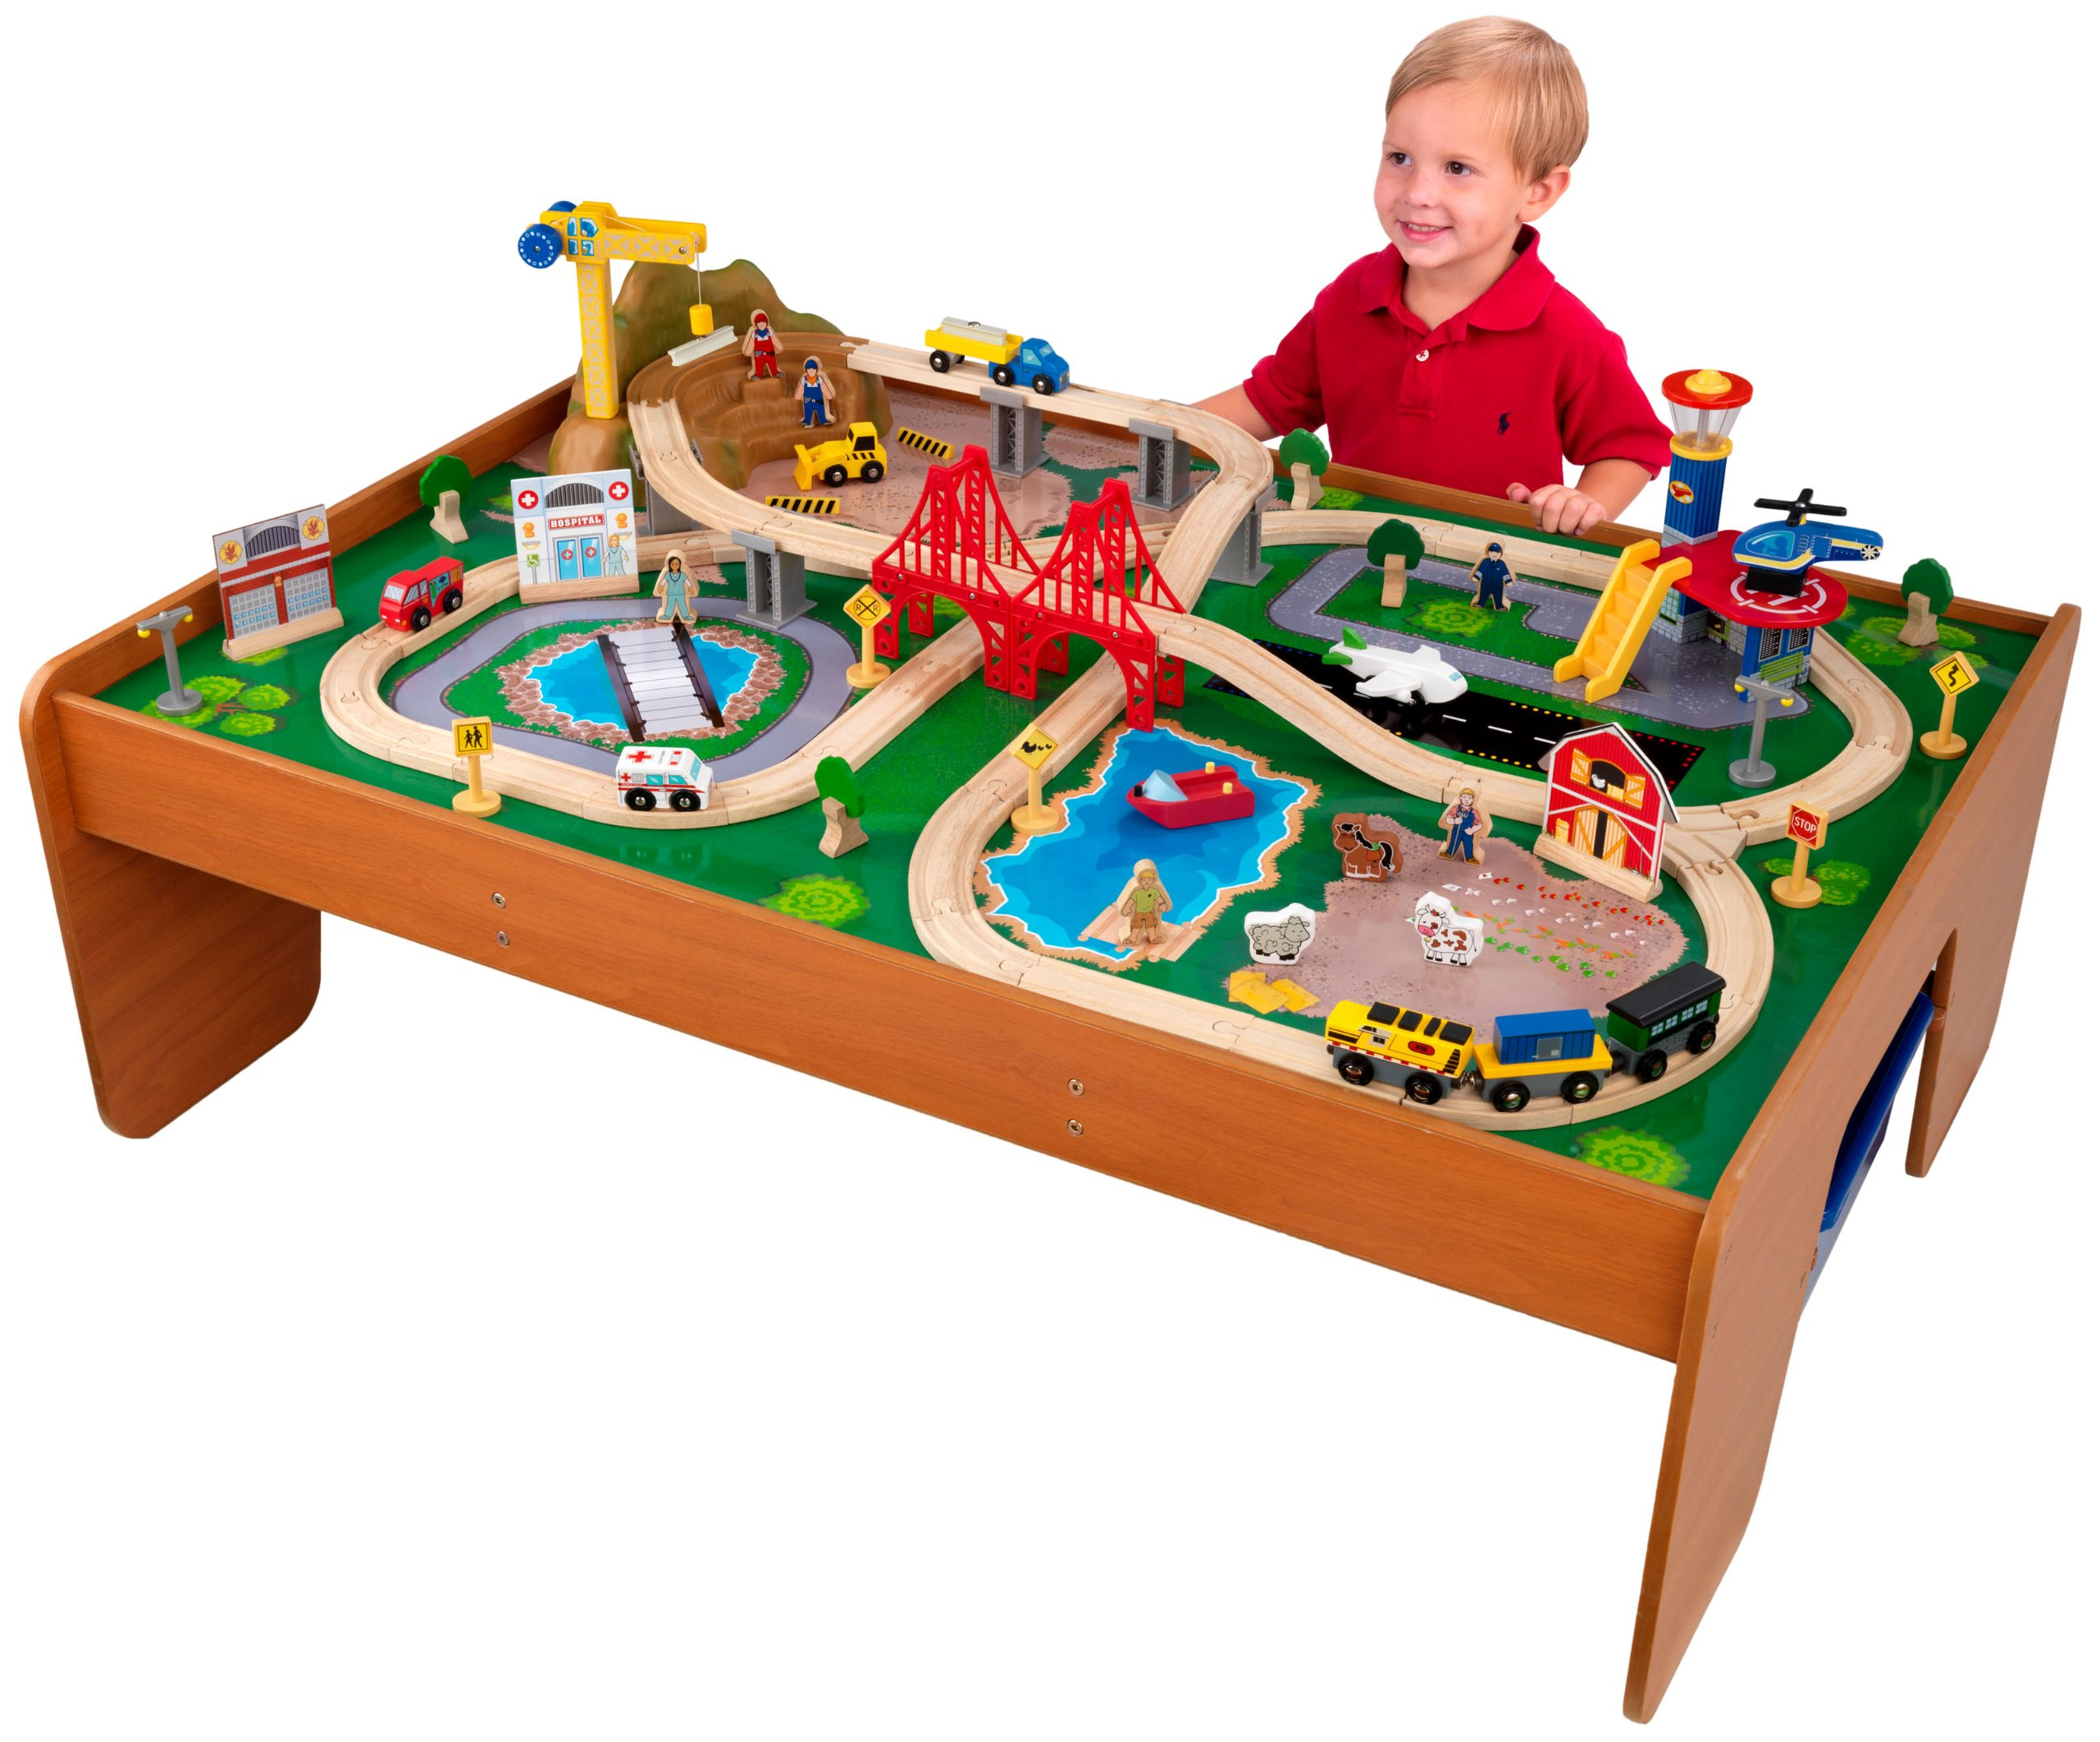 Superbe KidKraft Metropolis Train Table 100pc Train Set Kids Play Toy Fun Wood  Frame Kid